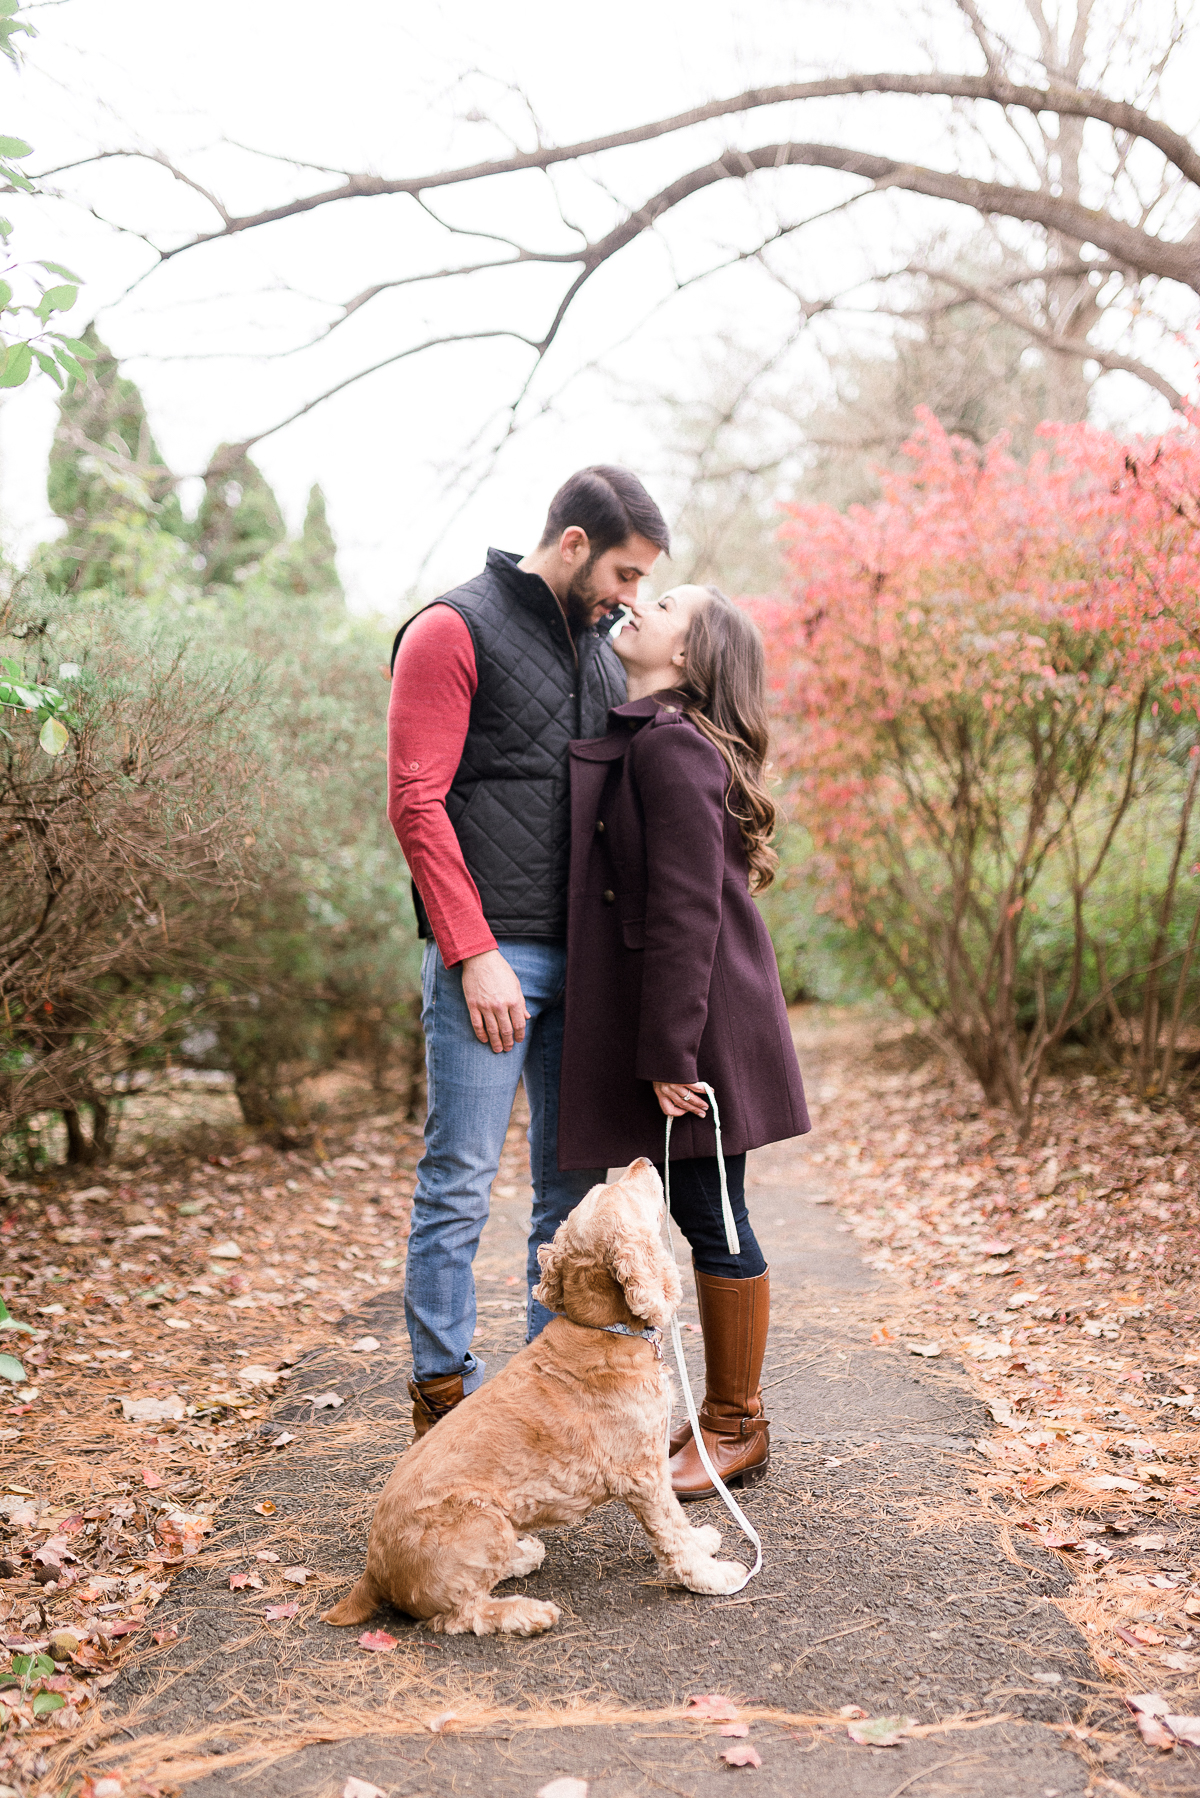 MD-Great-Falls-Engagement-Session-With-Dog-Fall-Foliage-35.jpg